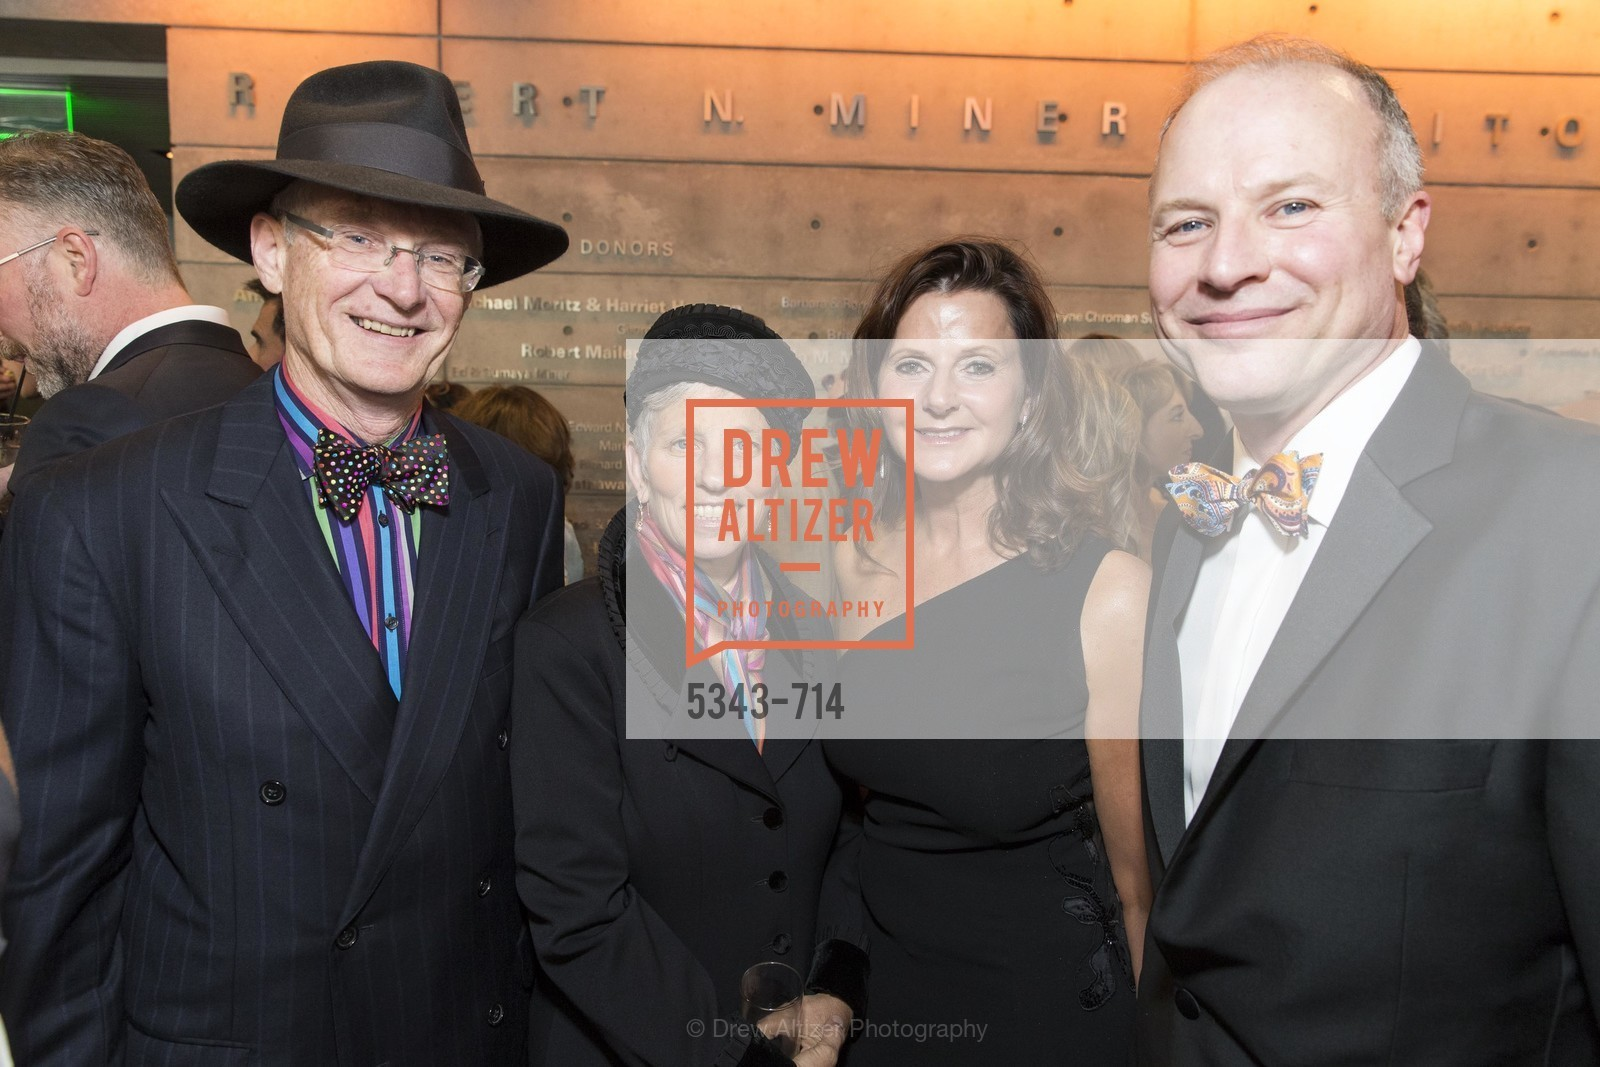 Terry Berkemeier, Lori Lerner, Diane Mailey, Don Derheim, SFJAZZ Gala 2015 Honors Joni Mitchell with Lifetime Achievement Award, US, May 8th, 2015,Drew Altizer, Drew Altizer Photography, full-service agency, private events, San Francisco photographer, photographer california